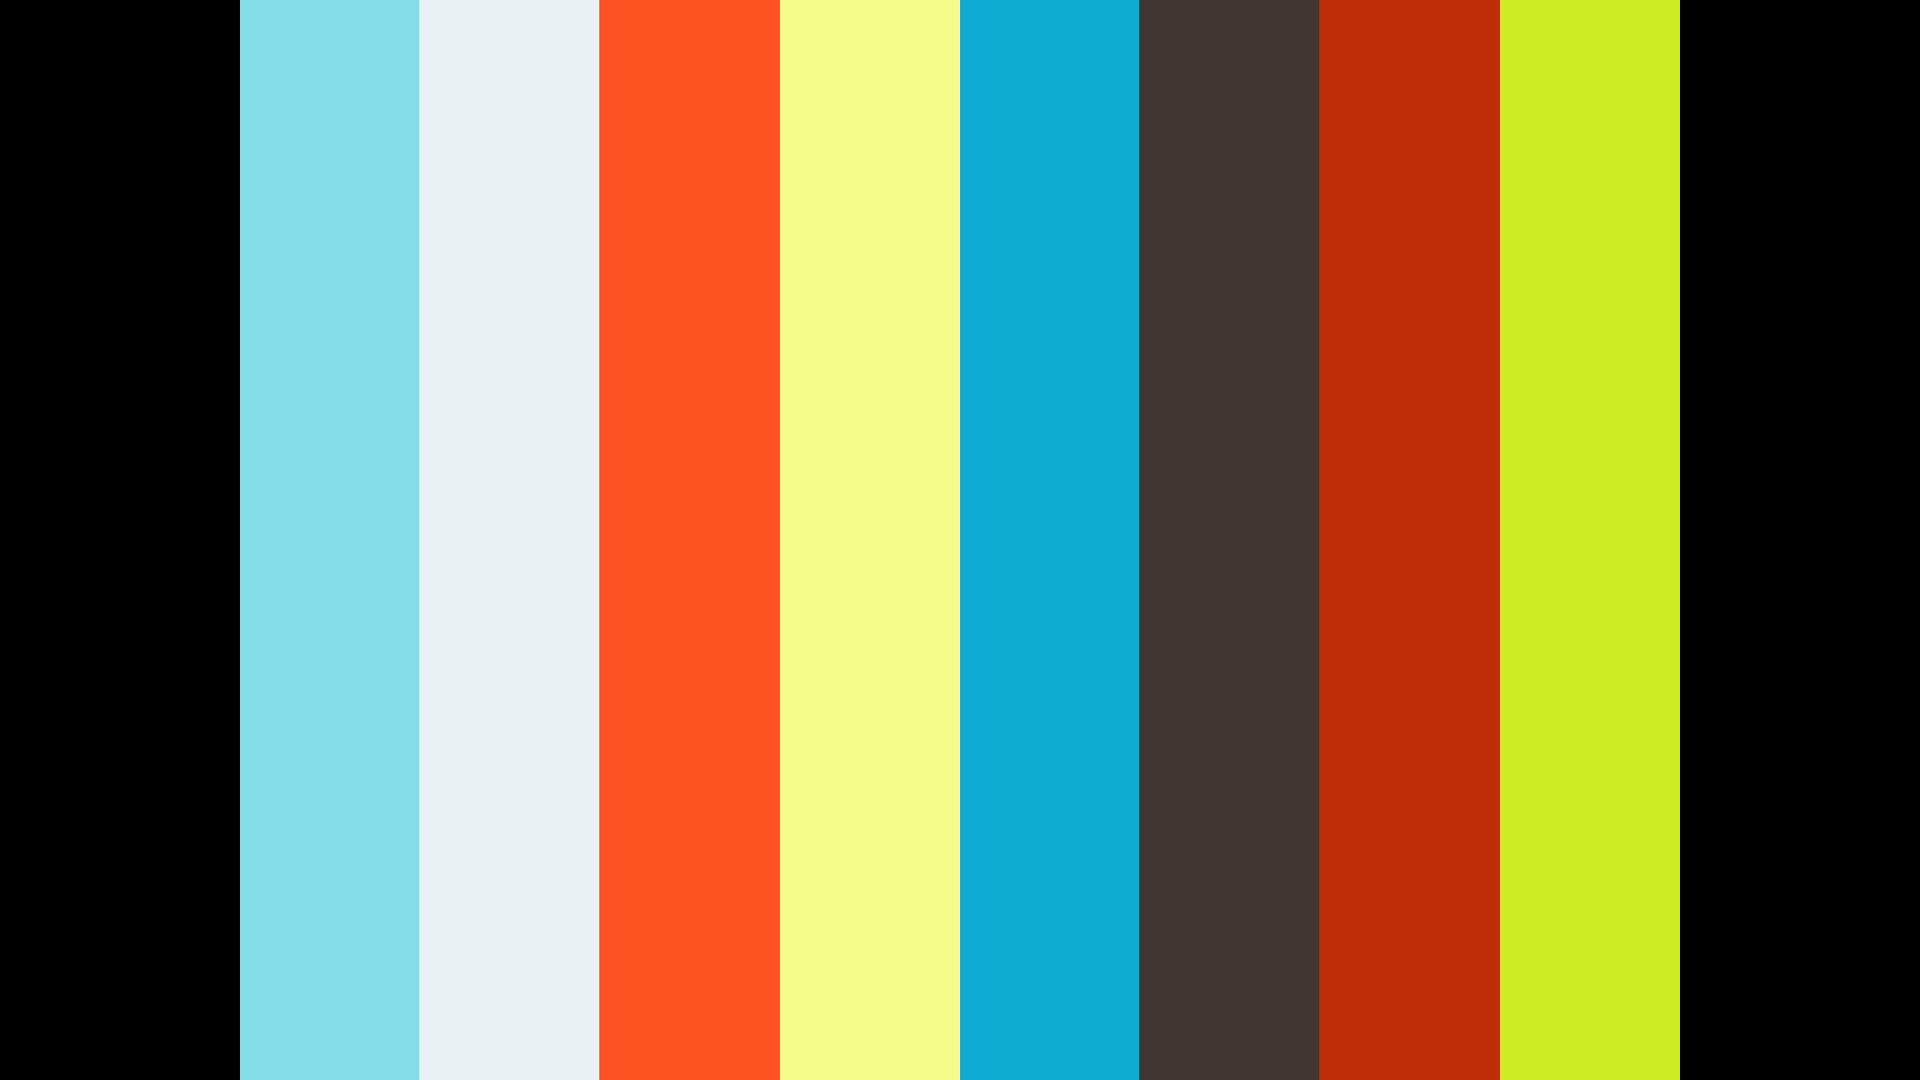 "#አርበኛ-ፋኖ ""ሸርታታ ስላም ""  #Arbegna Fano & ""Elusive Peace"" #Ethiopianism.tv May 4, 2020 #13"